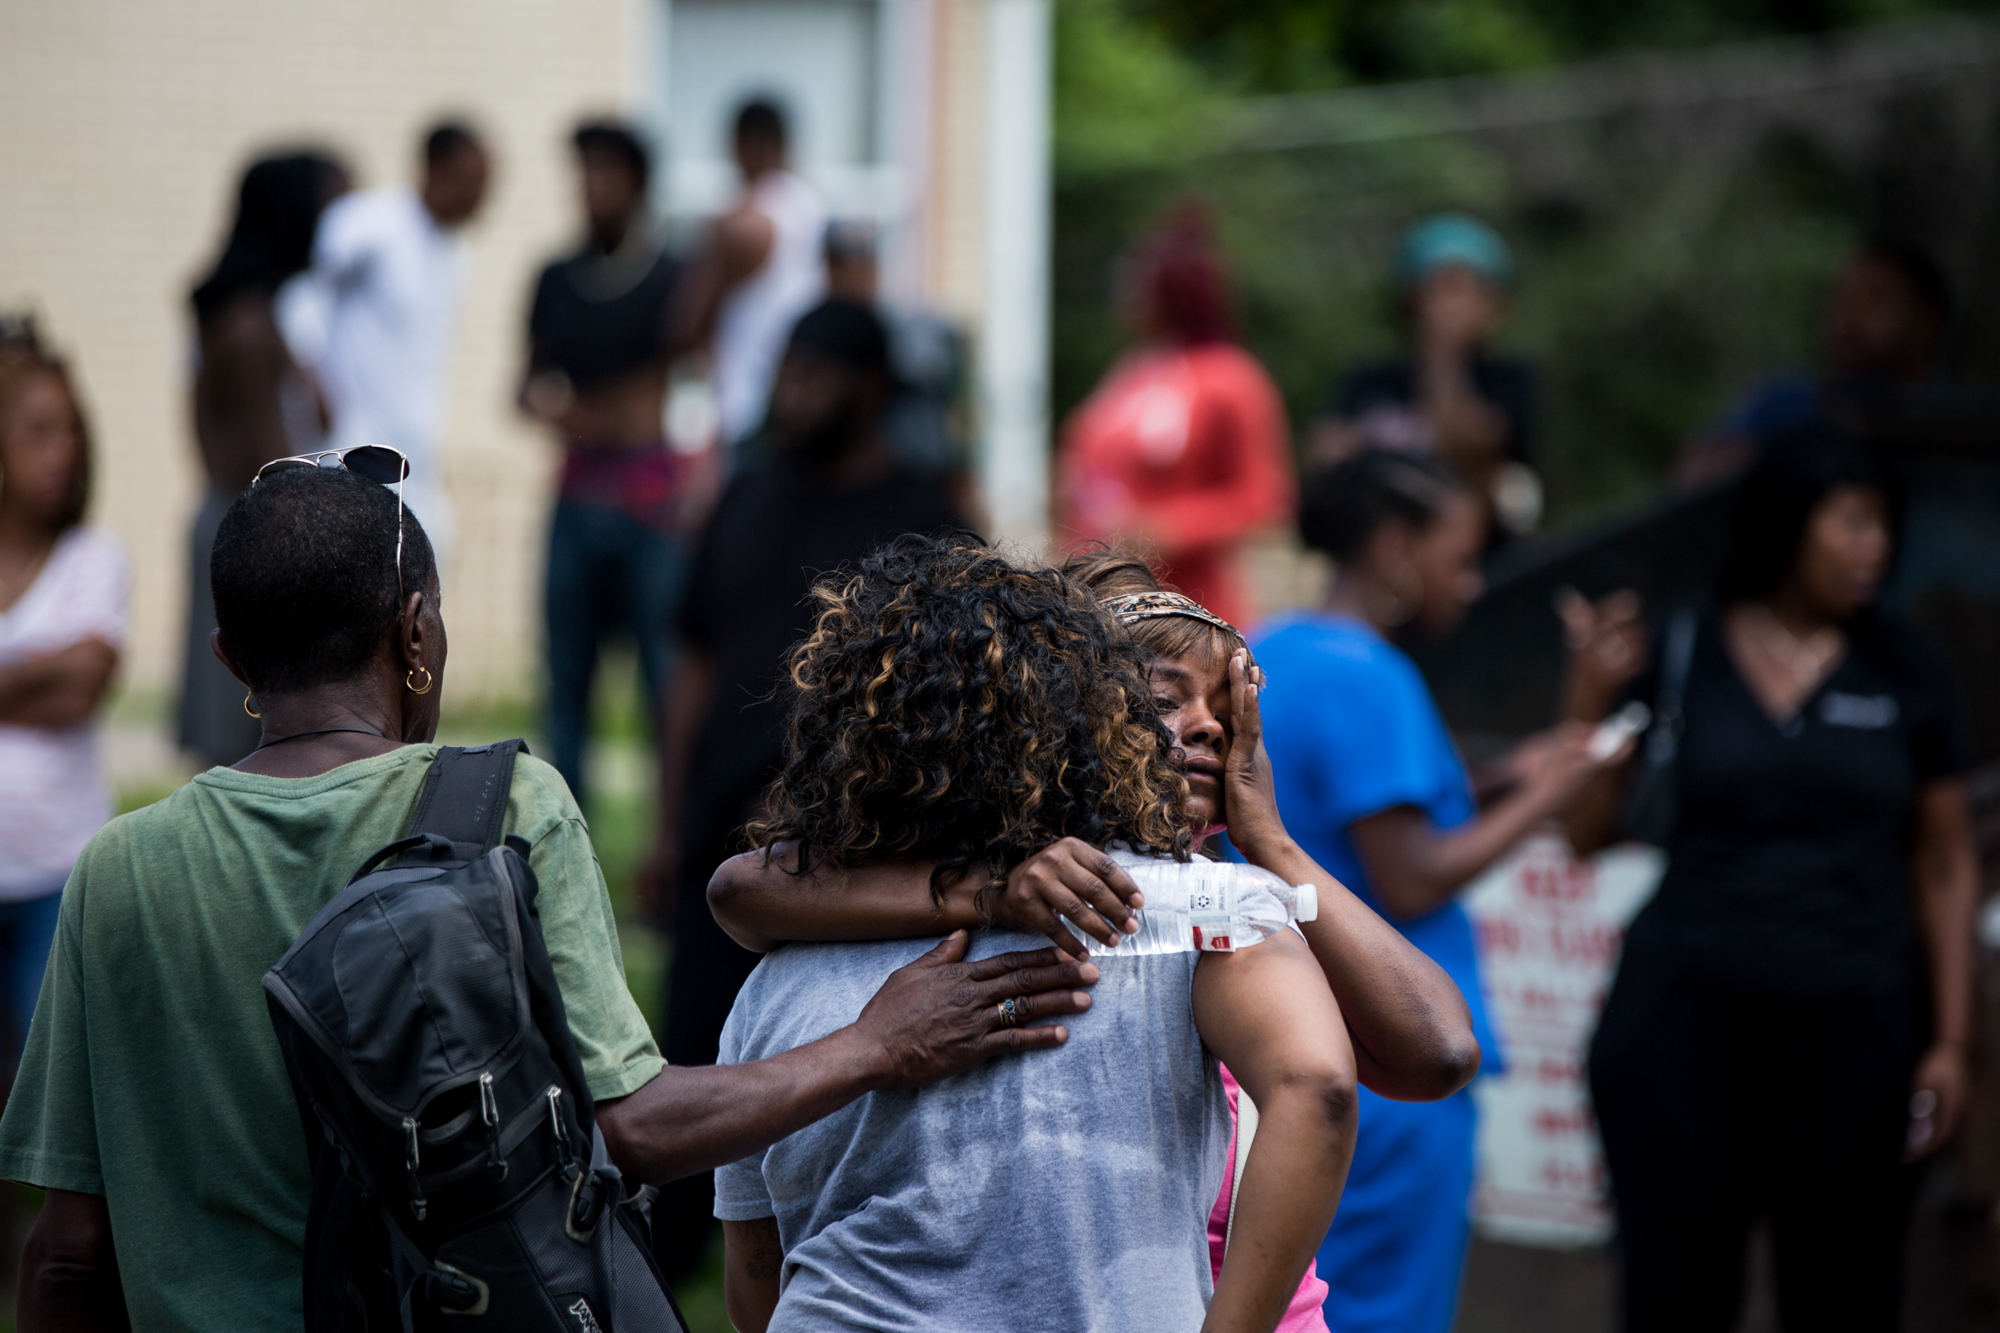 Neighbors and friends comfort each other at the scene of a shooting that killed two people on Tuesday, July 18, 2017 in Larimer, Pennsylvania.